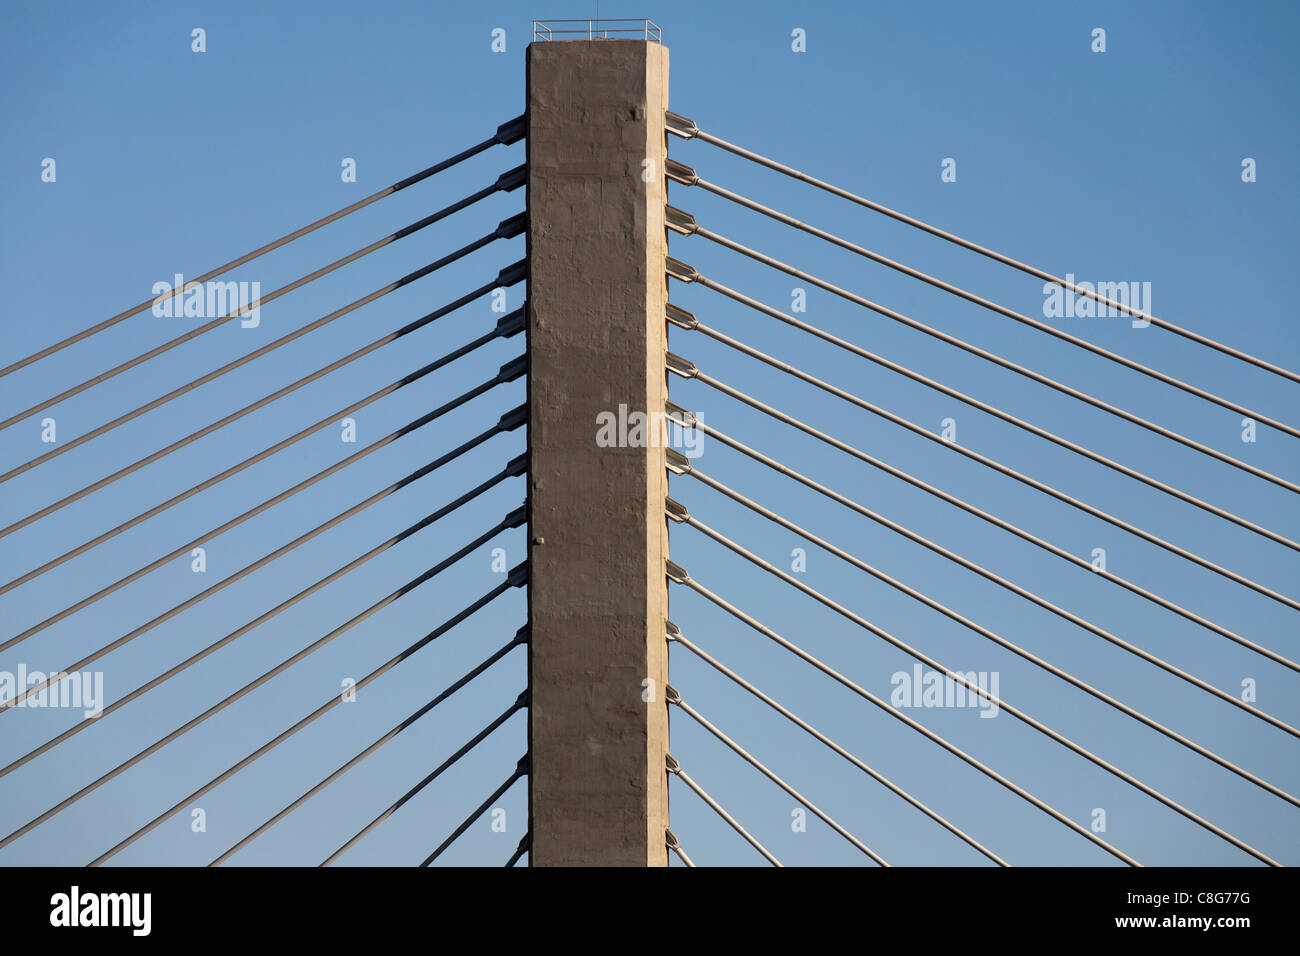 Close up details of cables fanning from a concrete tower of the Aswan suspension bridge spanning the river Nile, - Stock Image